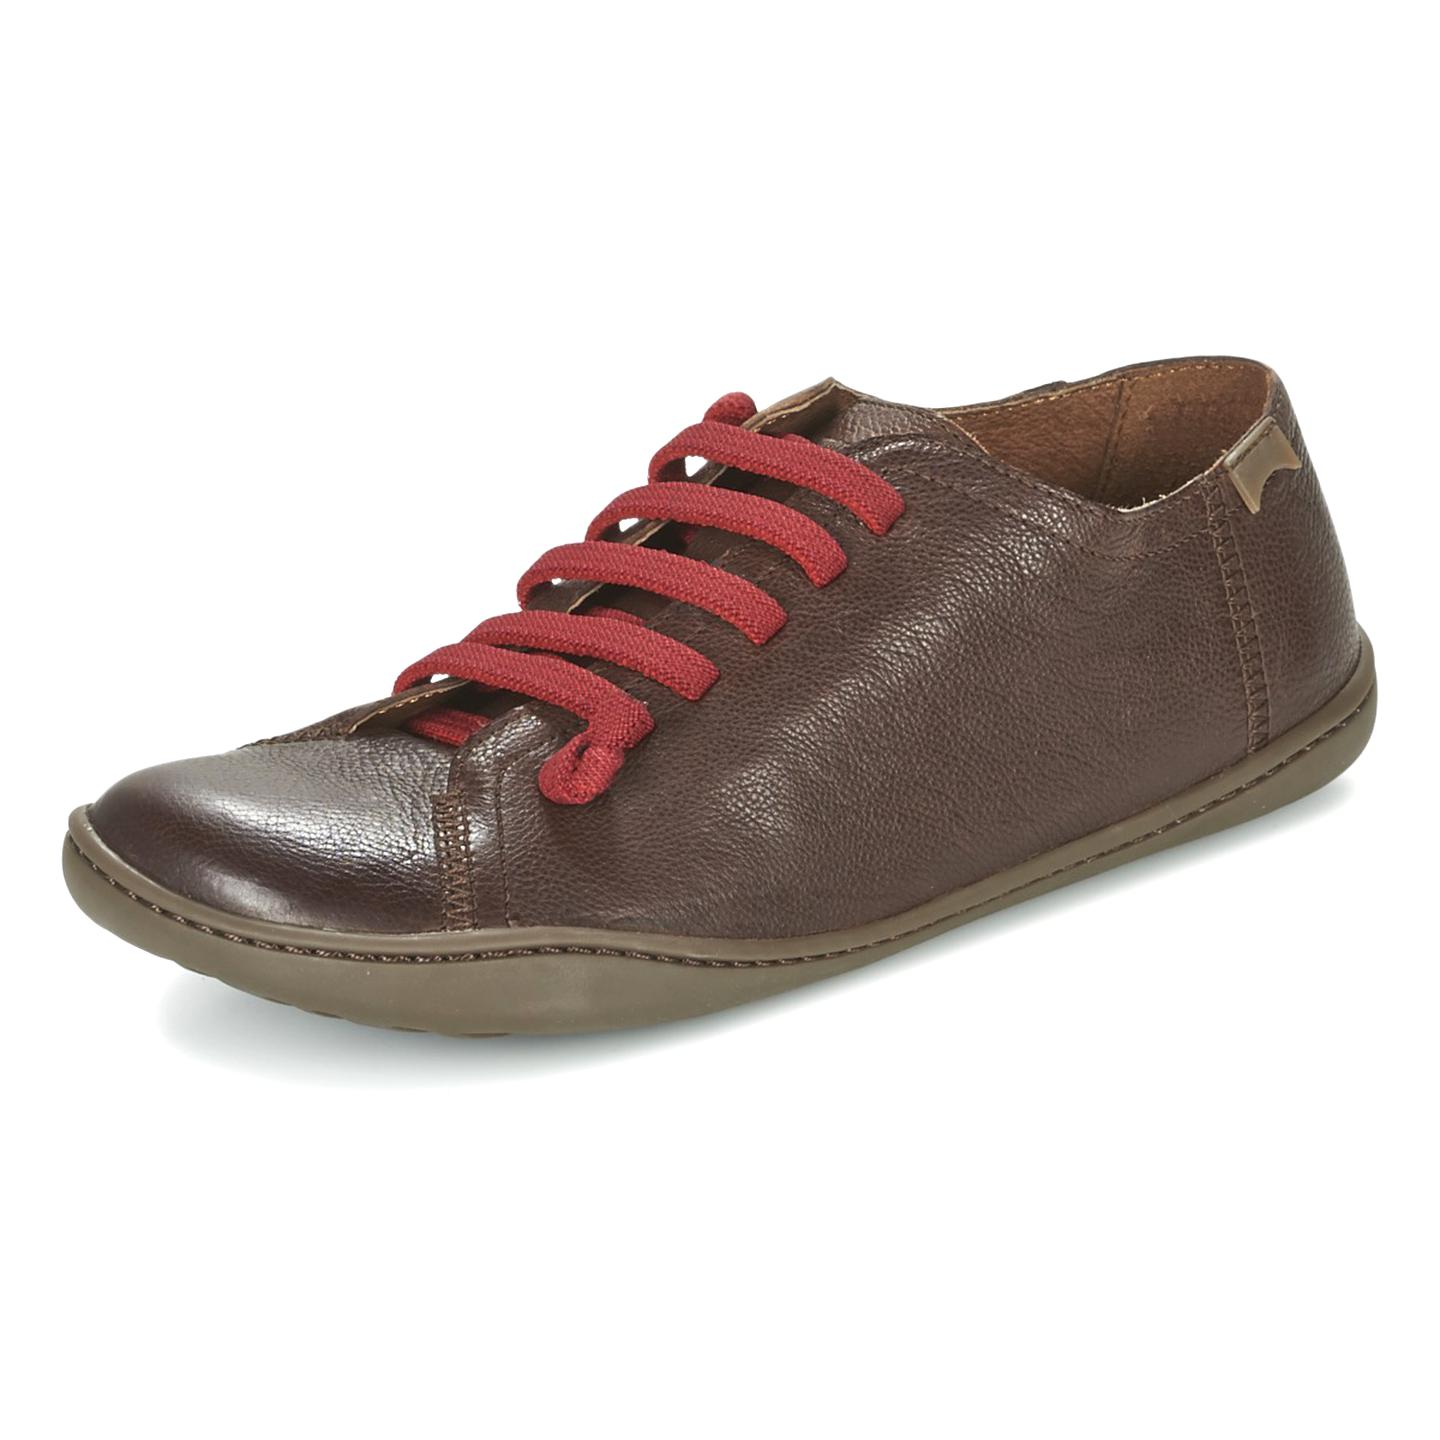 chaussures camper femme d'occasion